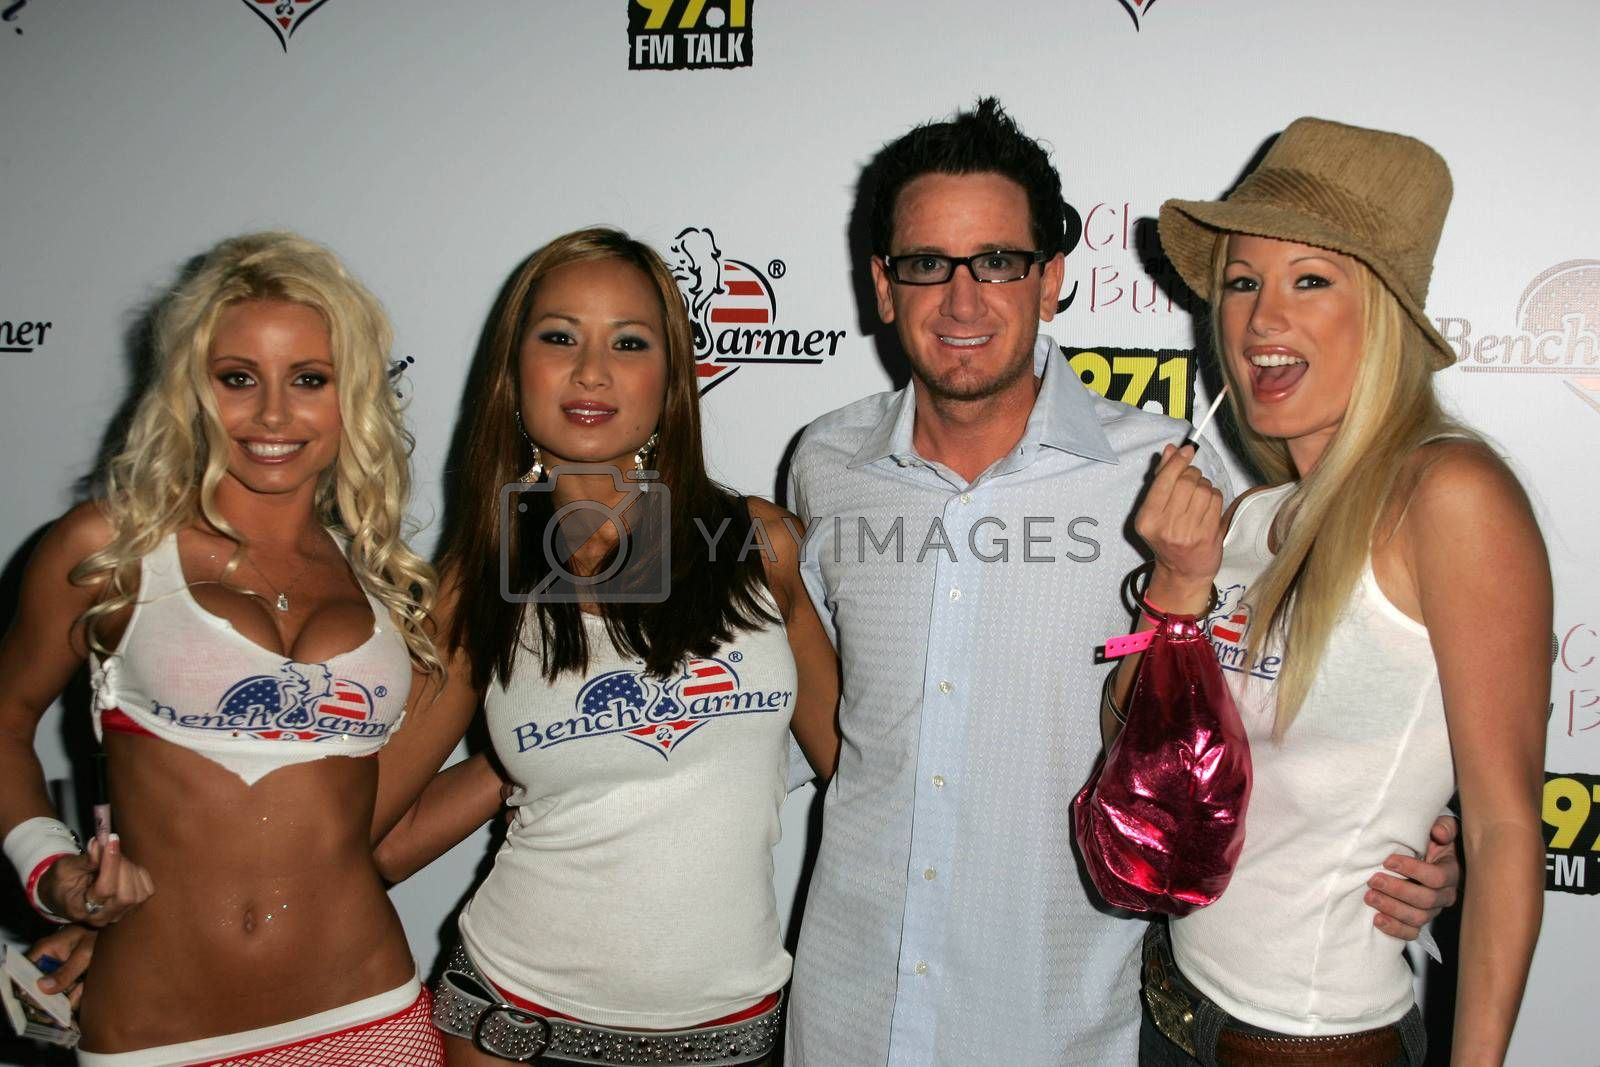 Chad Wright at Bench Warmer's 2nd Annual 4th of July Celebration, The Day After, Hollywood, CA 06-29-05